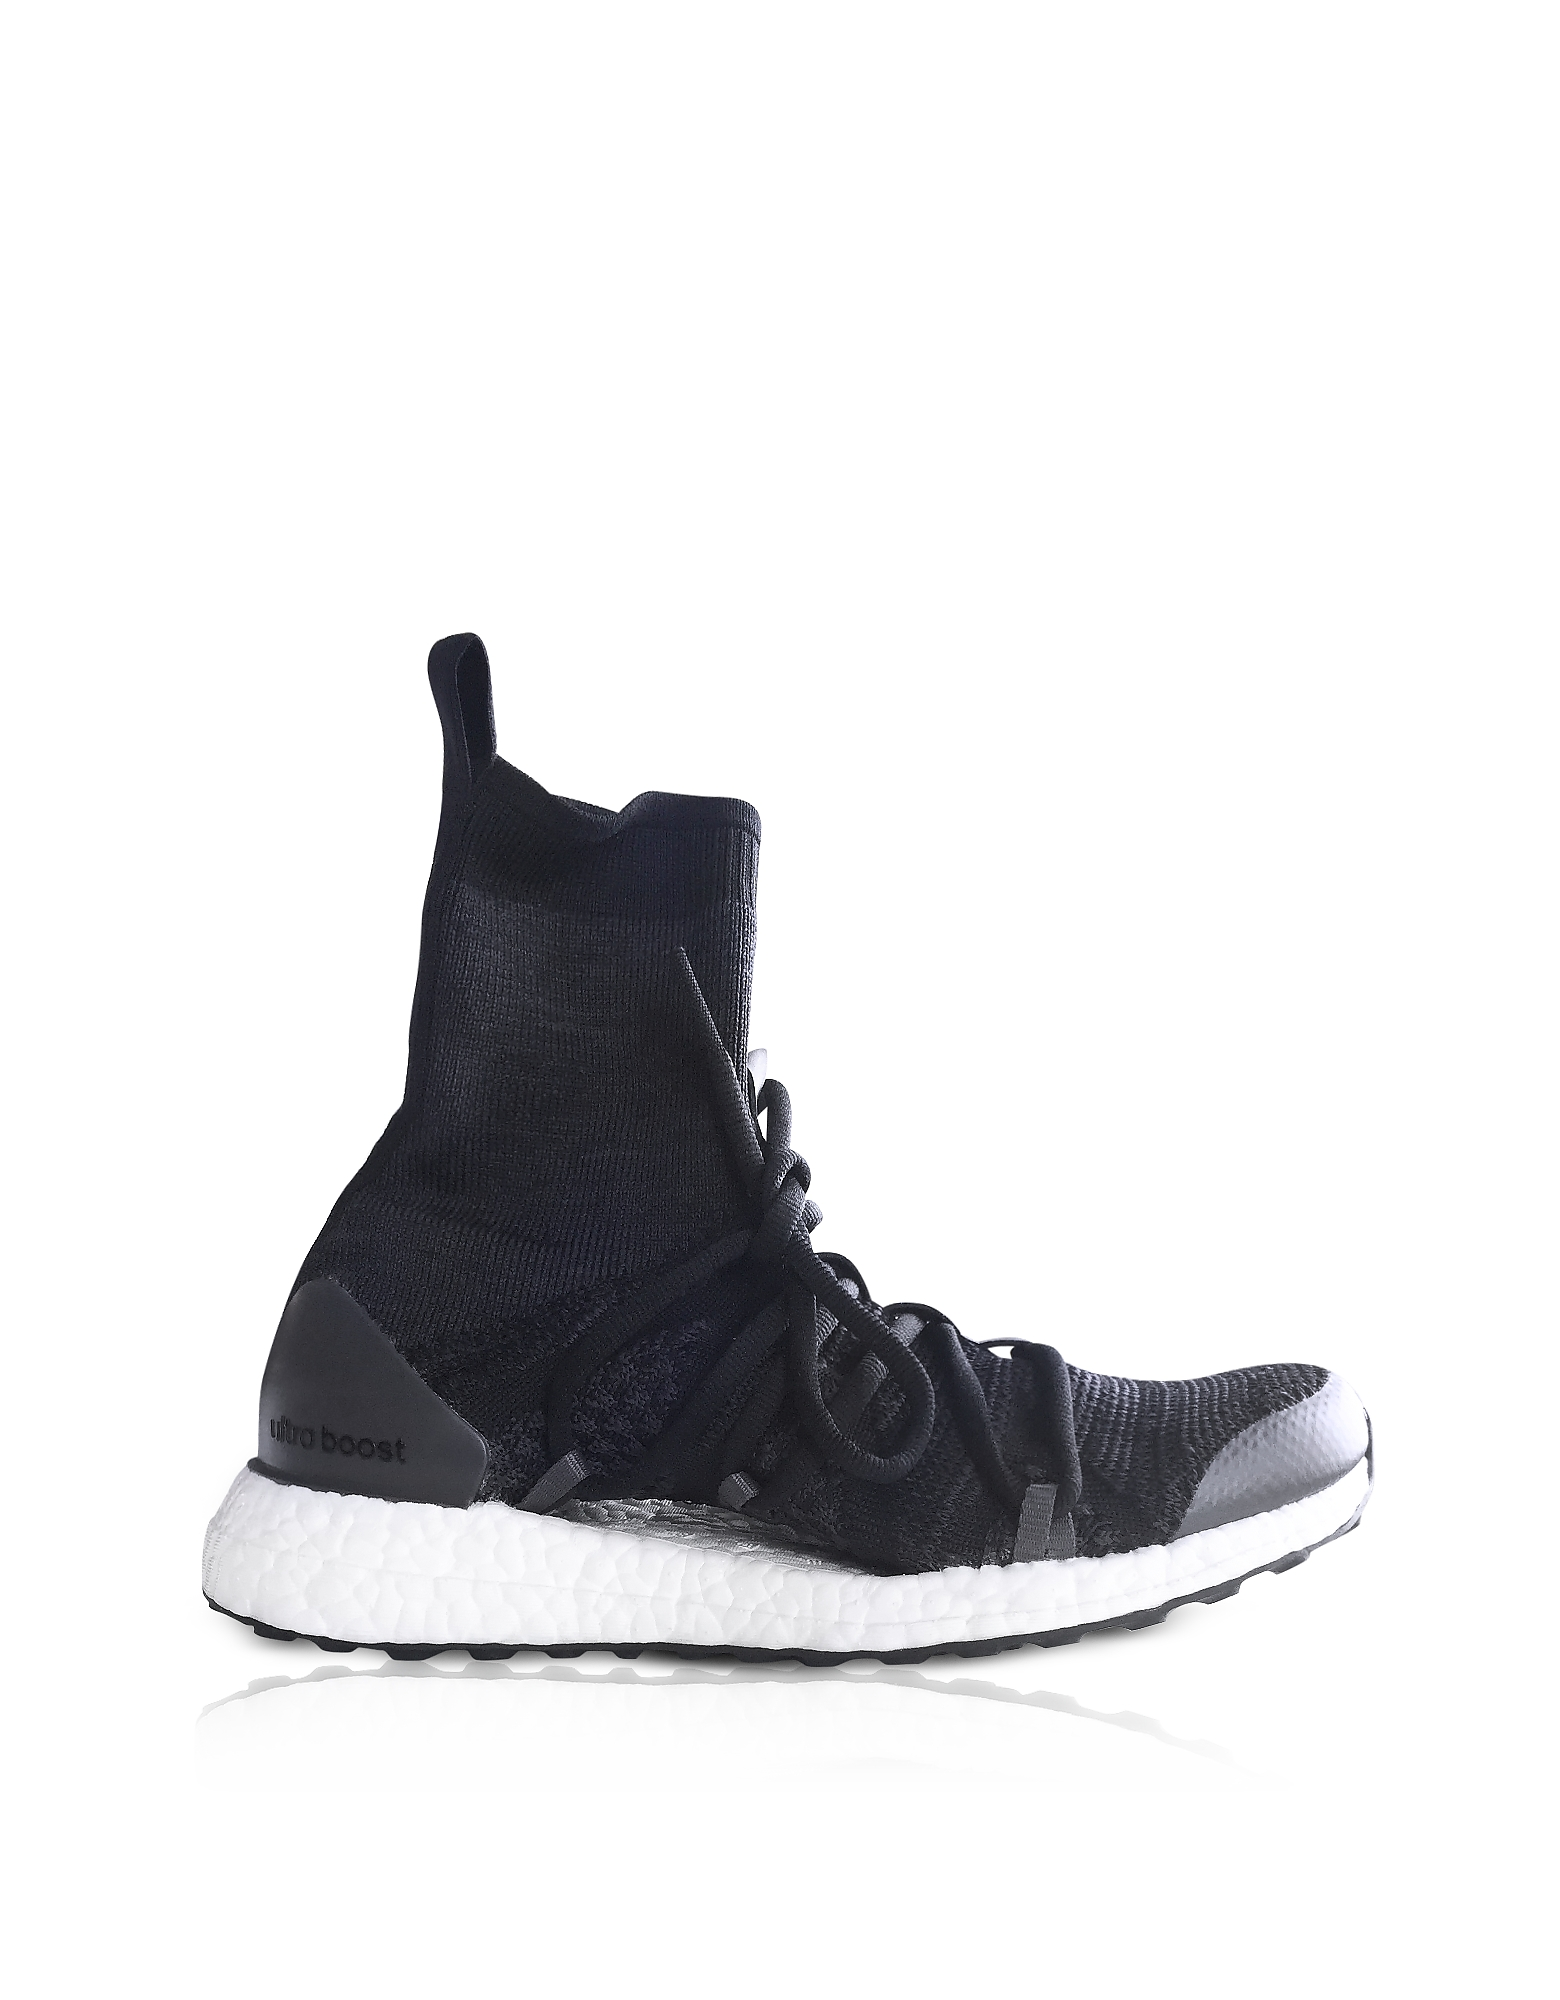 Core Black and Night Grey Ultraboost X Mid Top Trainers